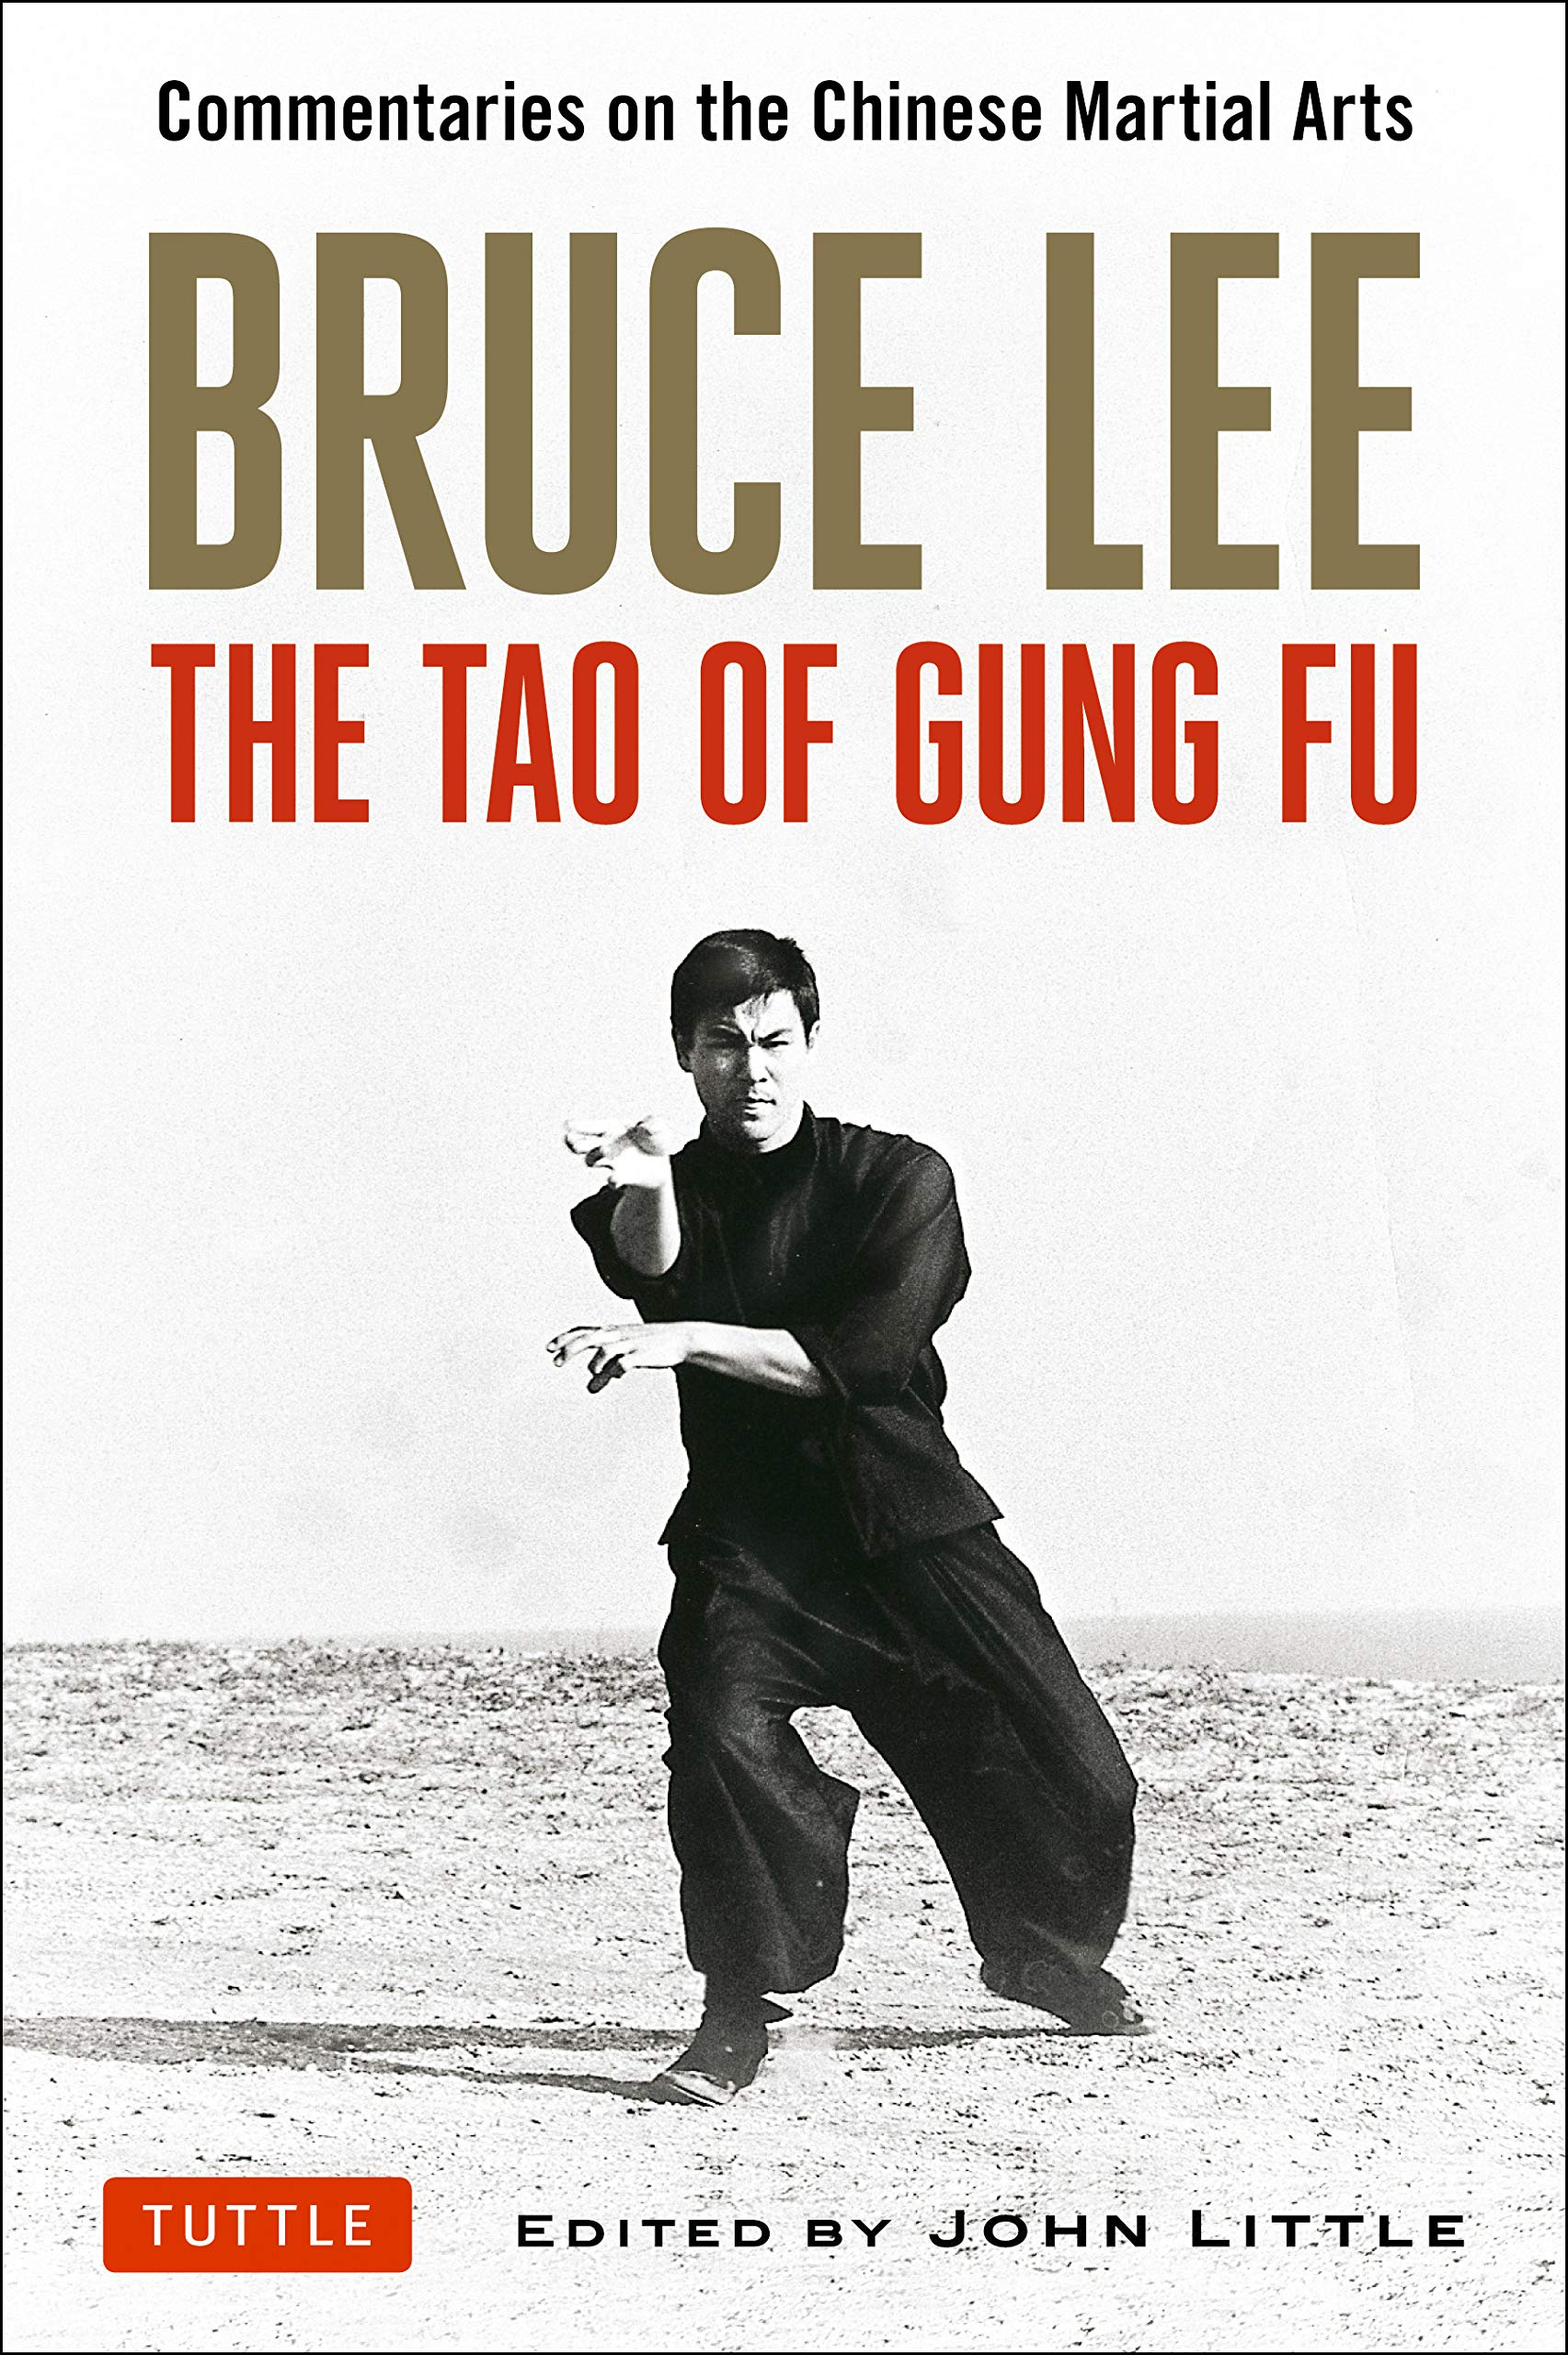 Office & School Supplies Bruce Lee Basic Chinese Boxing Skill Book Learning Philosophy Art Of Self-defense Chinese Kung Fu Wushu Book Online Shop